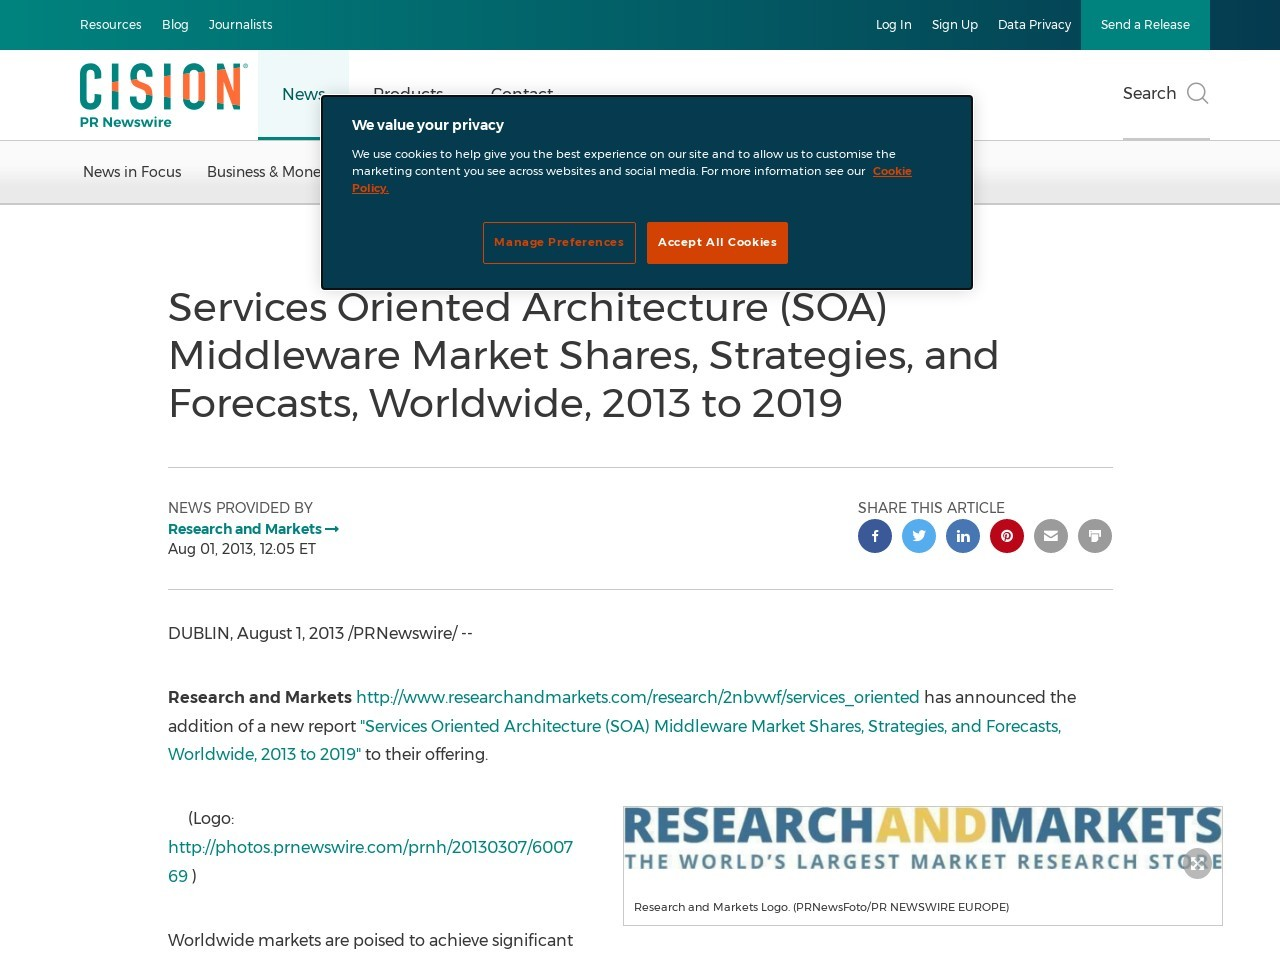 Services Oriented Architecture (SOA) Middleware Market Shares, Strategies …